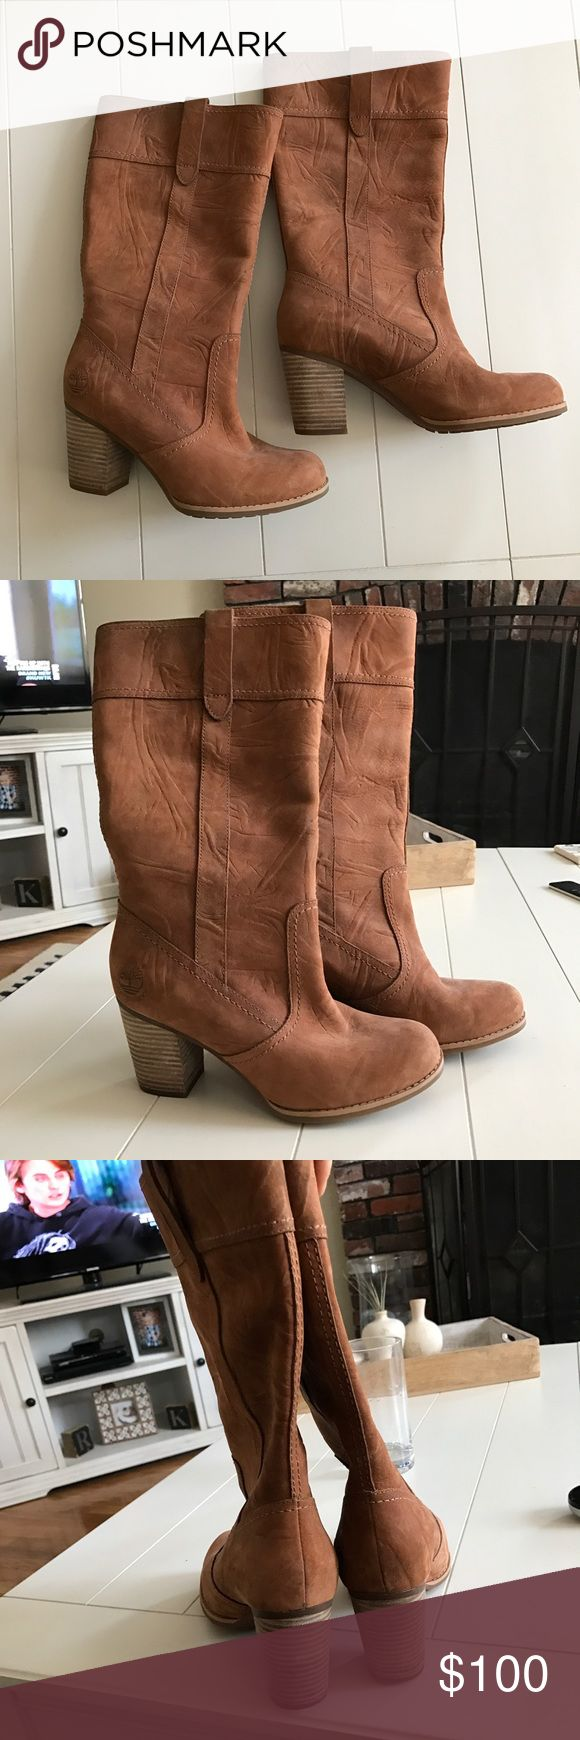 Timberland Tall Heeled Boots US 6/UK 4. Cognac Brown. Genuine Leather.  Excellent condition! Only have been worn a couple of times.  Originally $250. Open to offers. Timberland Shoes Heeled Boots